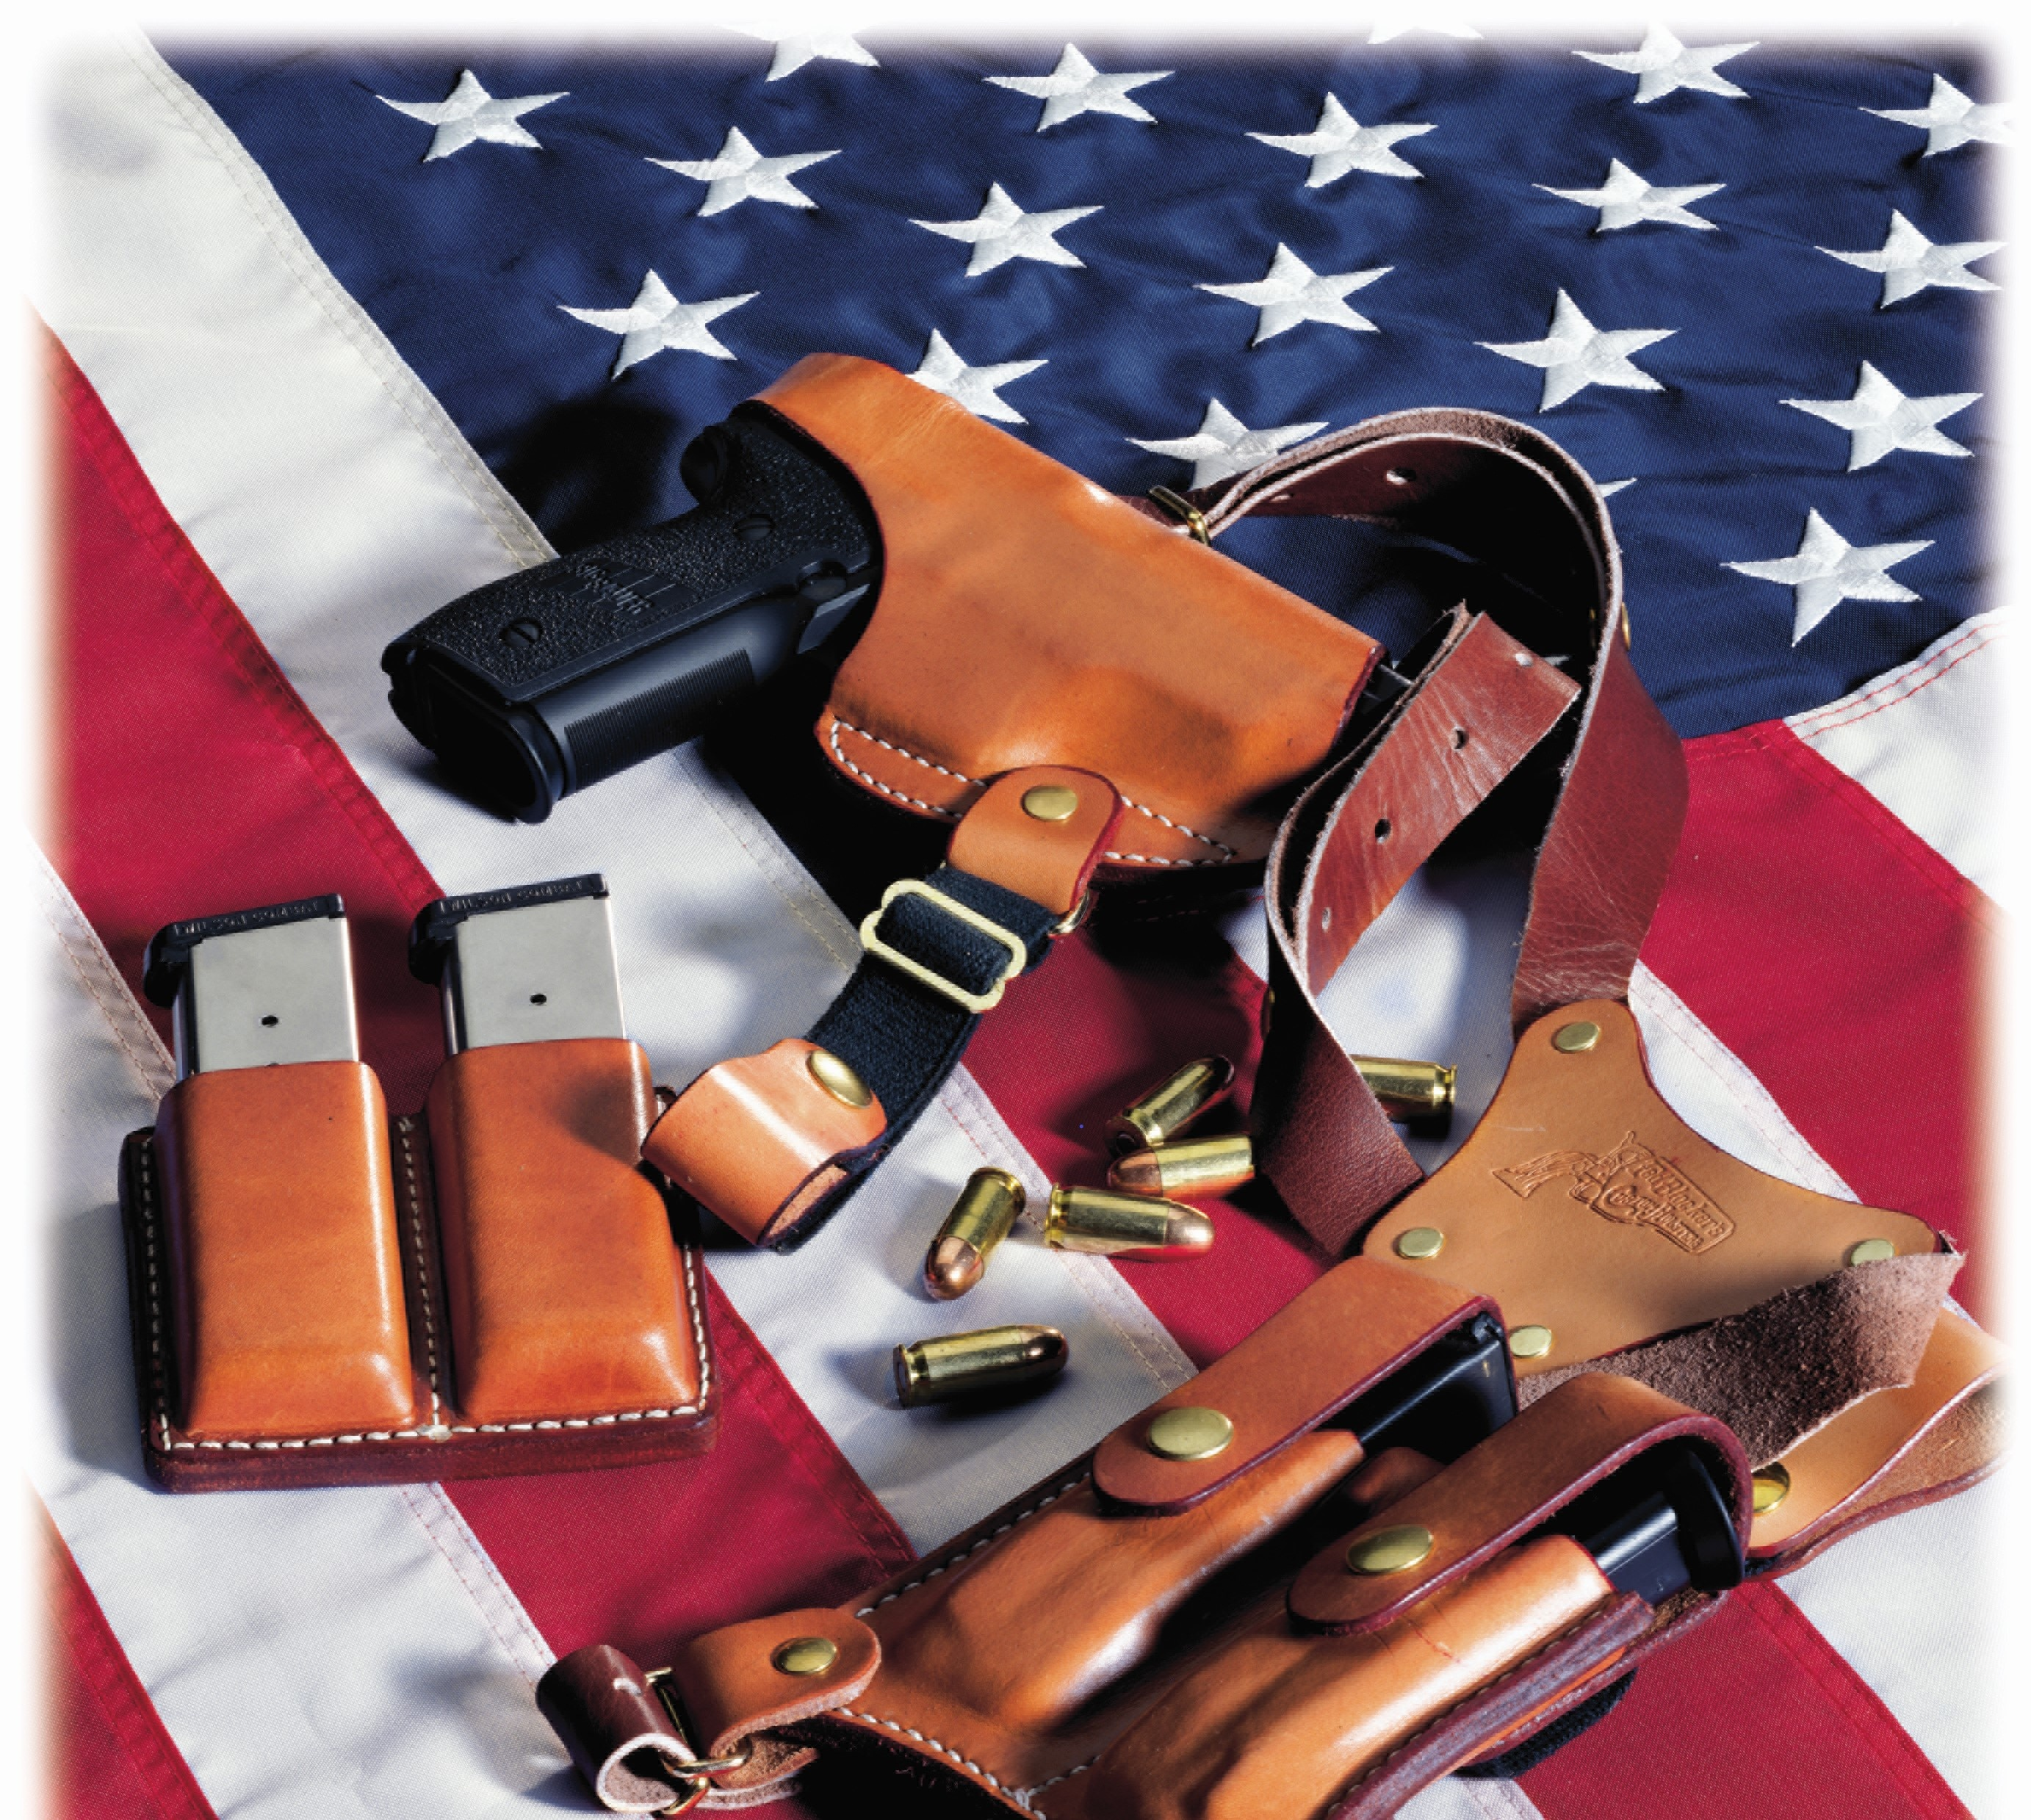 Great Opportunity - Leather Manufacturer of Holsters and Belts.